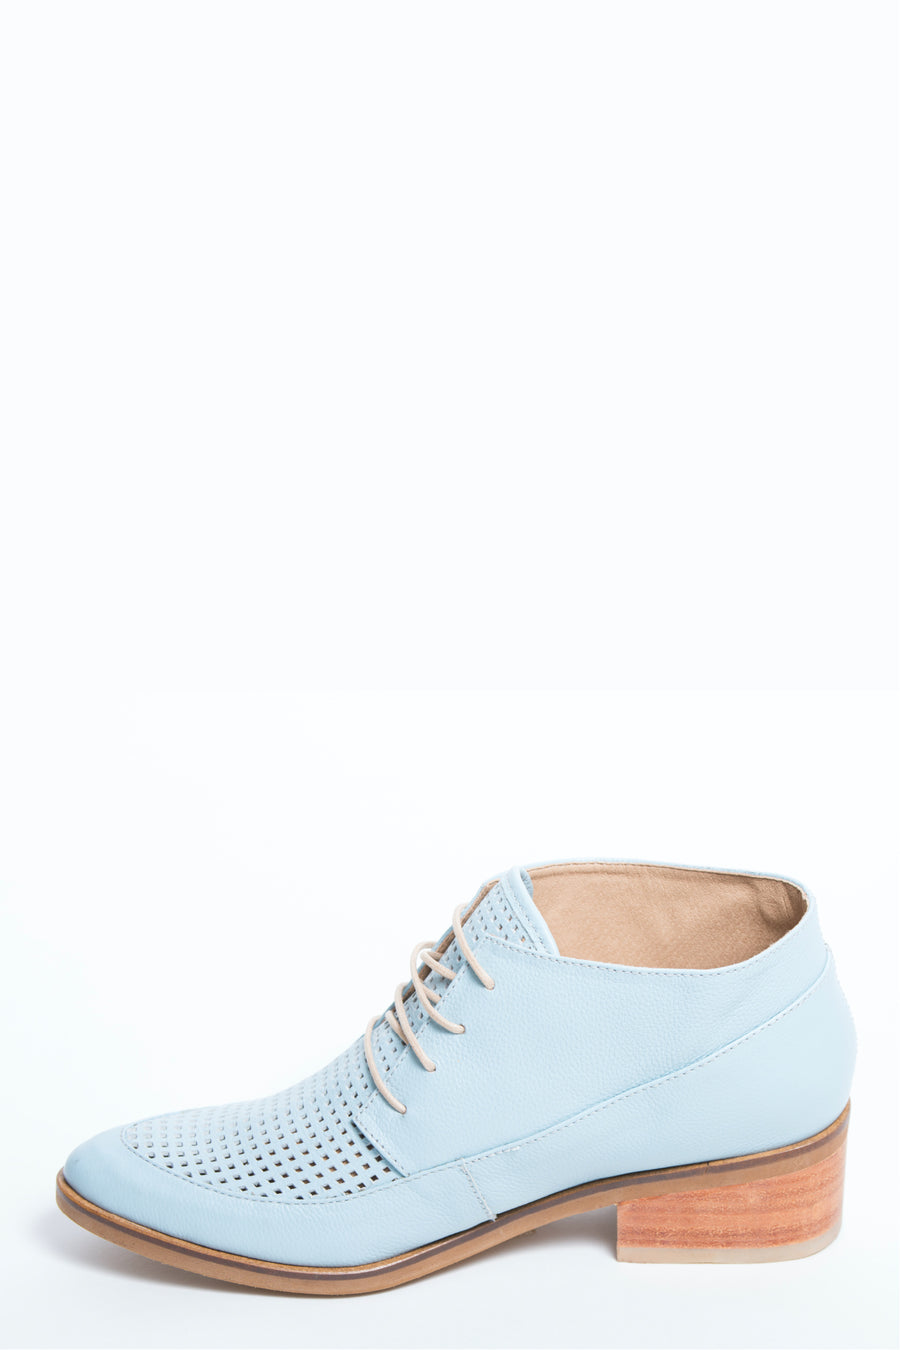 Berlin booties in soft blue leather